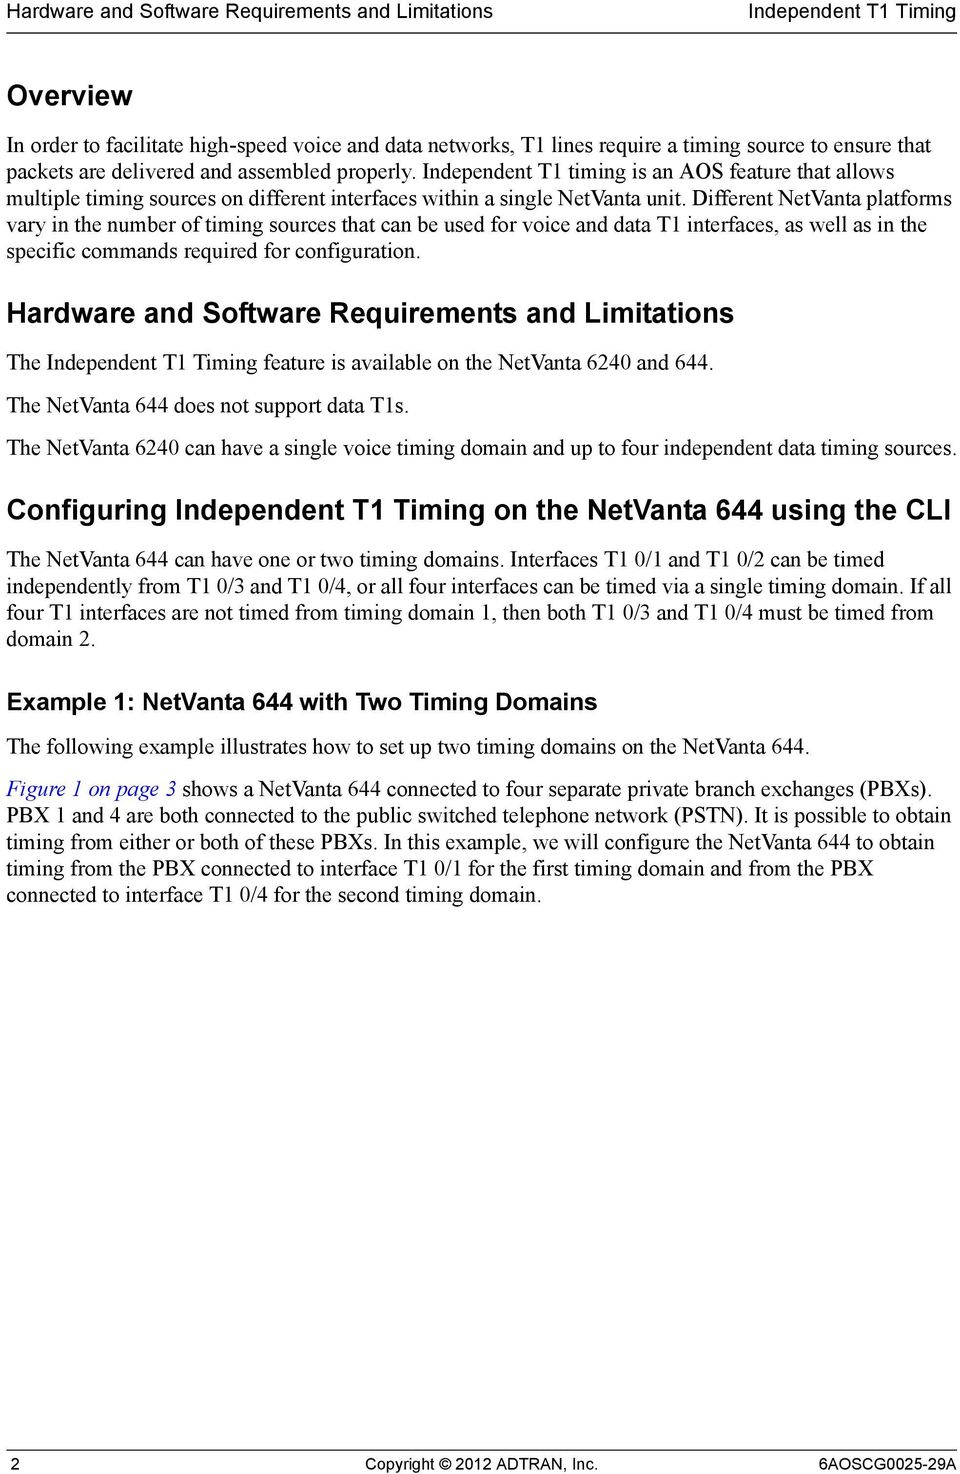 Different NetVanta platforms vary in the number of timing sources that can be used for voice and data T1 interfaces, as well as in the specific commands required for configuration.